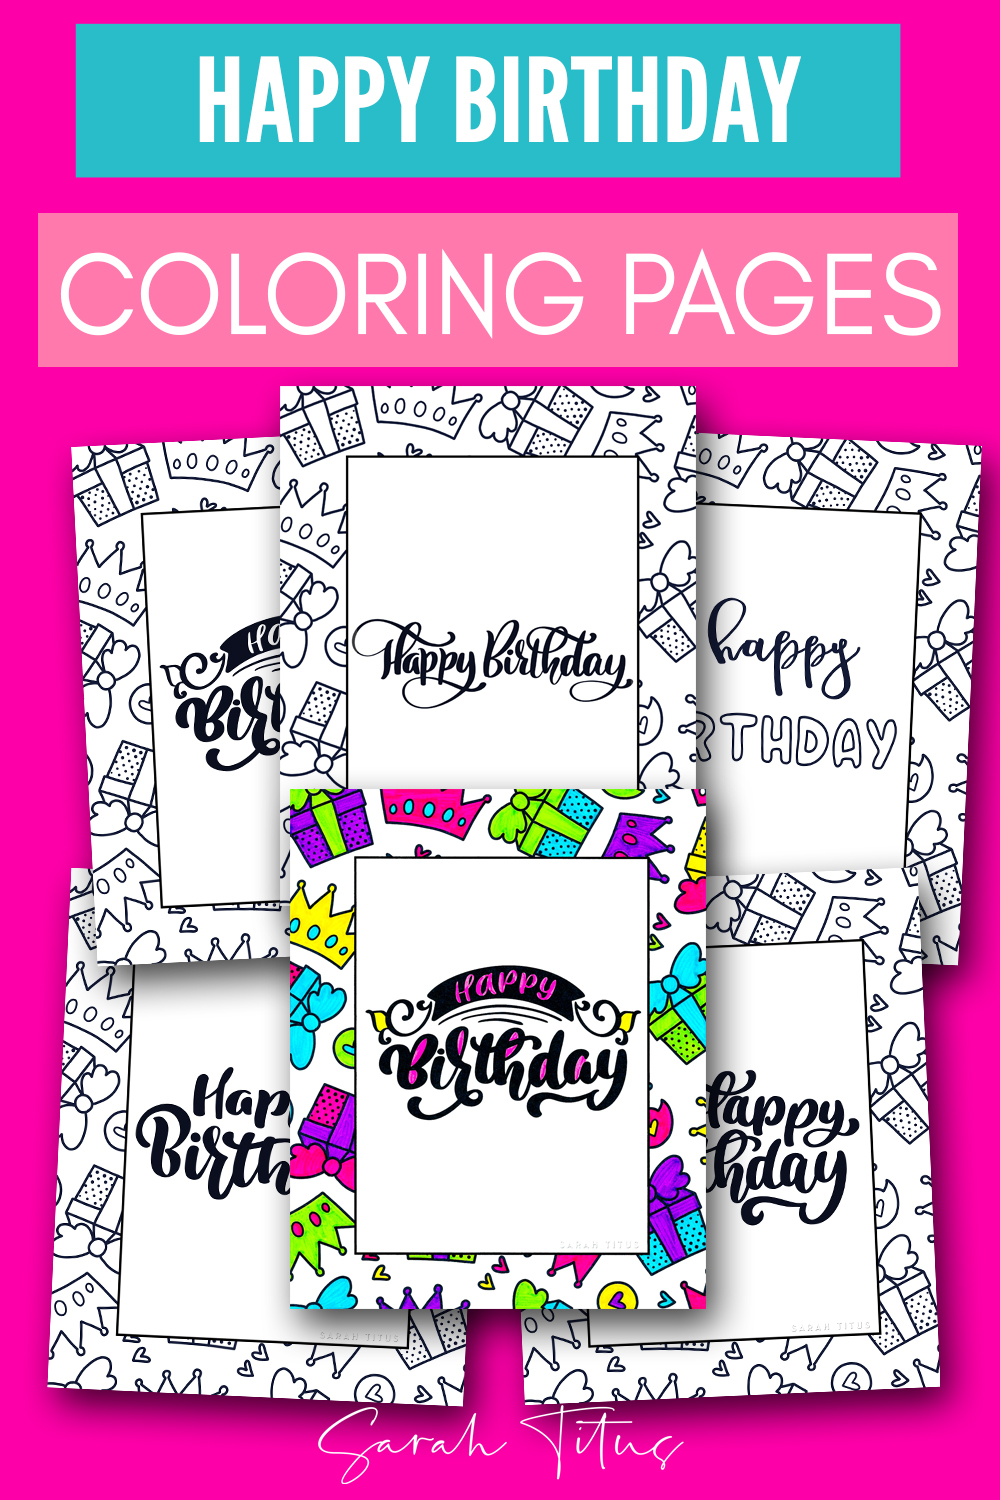 Mom Coloring Pages Happy Birthday Mommy Doodle Coloring Page Free ... | 1500x1000